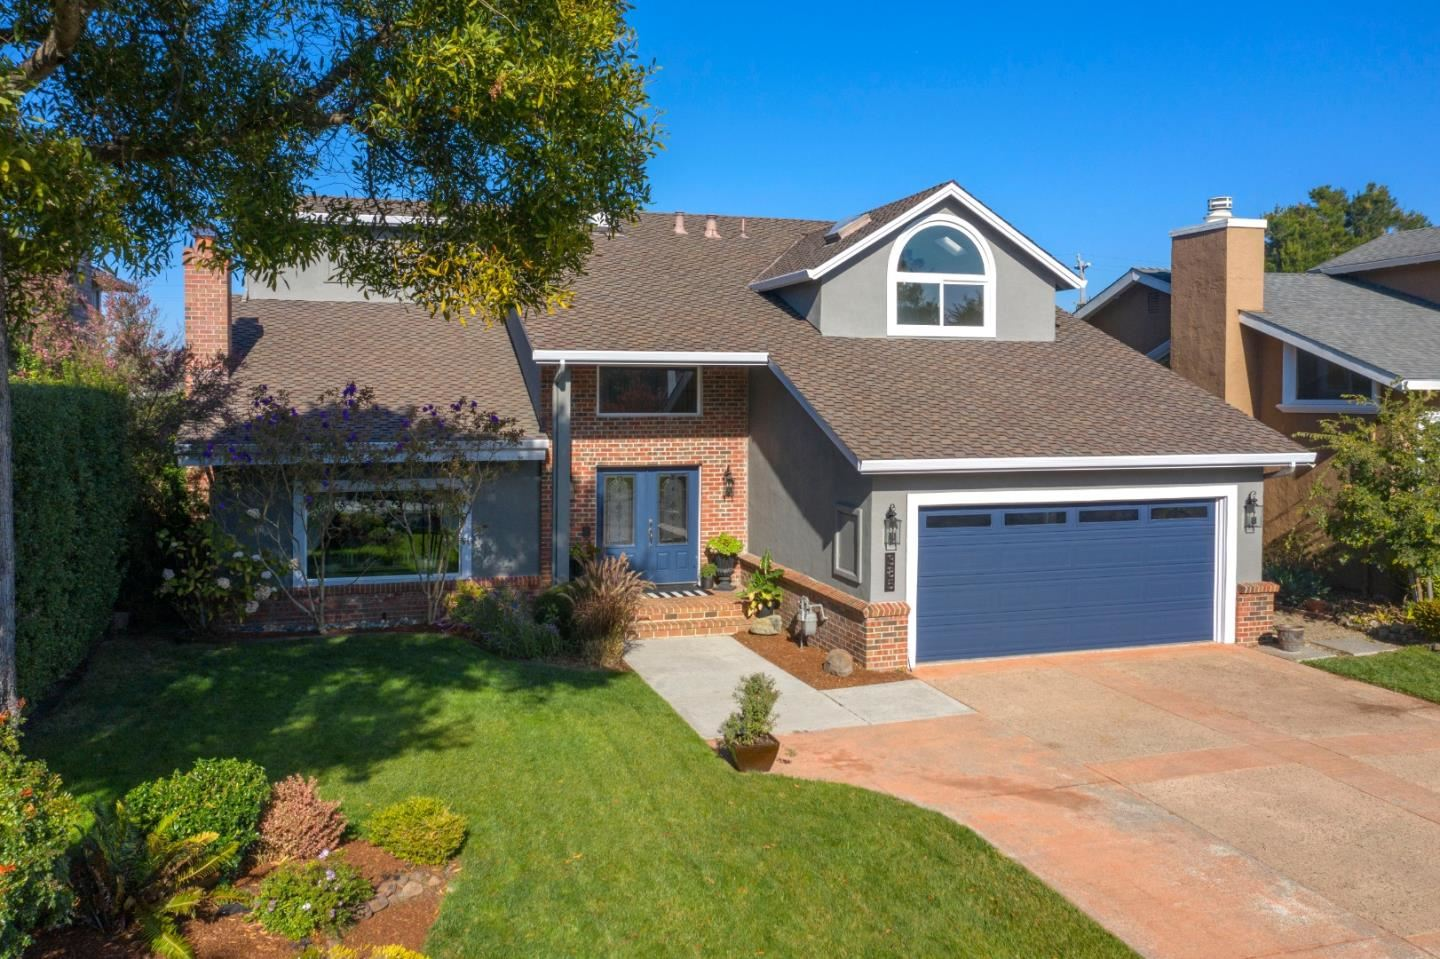 Photo for 385 Saint Andrews LN, HALF MOON BAY, CA 94019 (MLS # ML81823527)